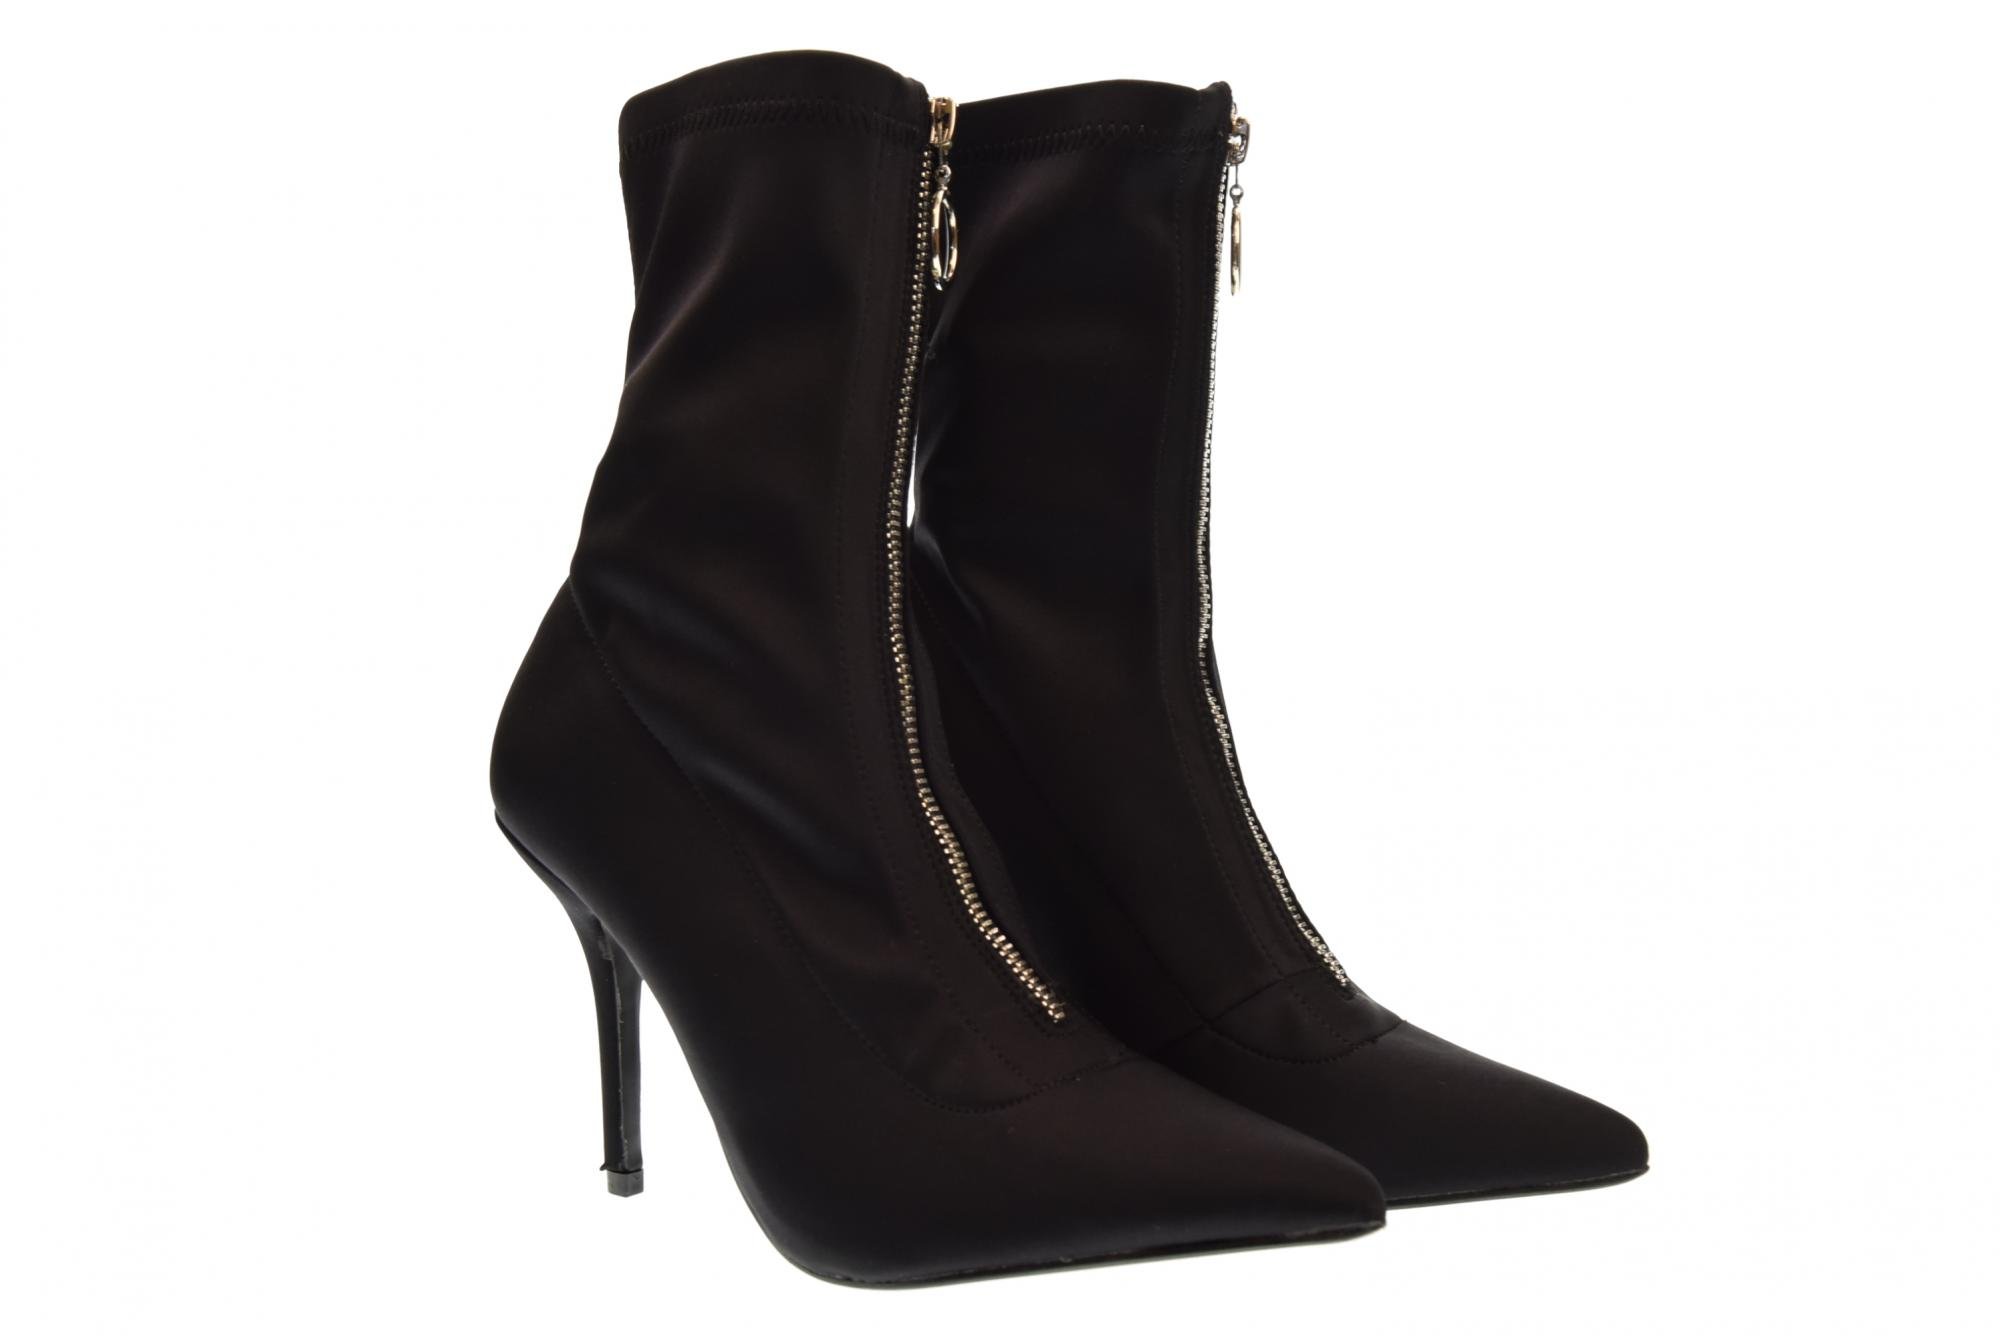 Or & or a18g chaussures Femme Bottines bottes gd05 noir